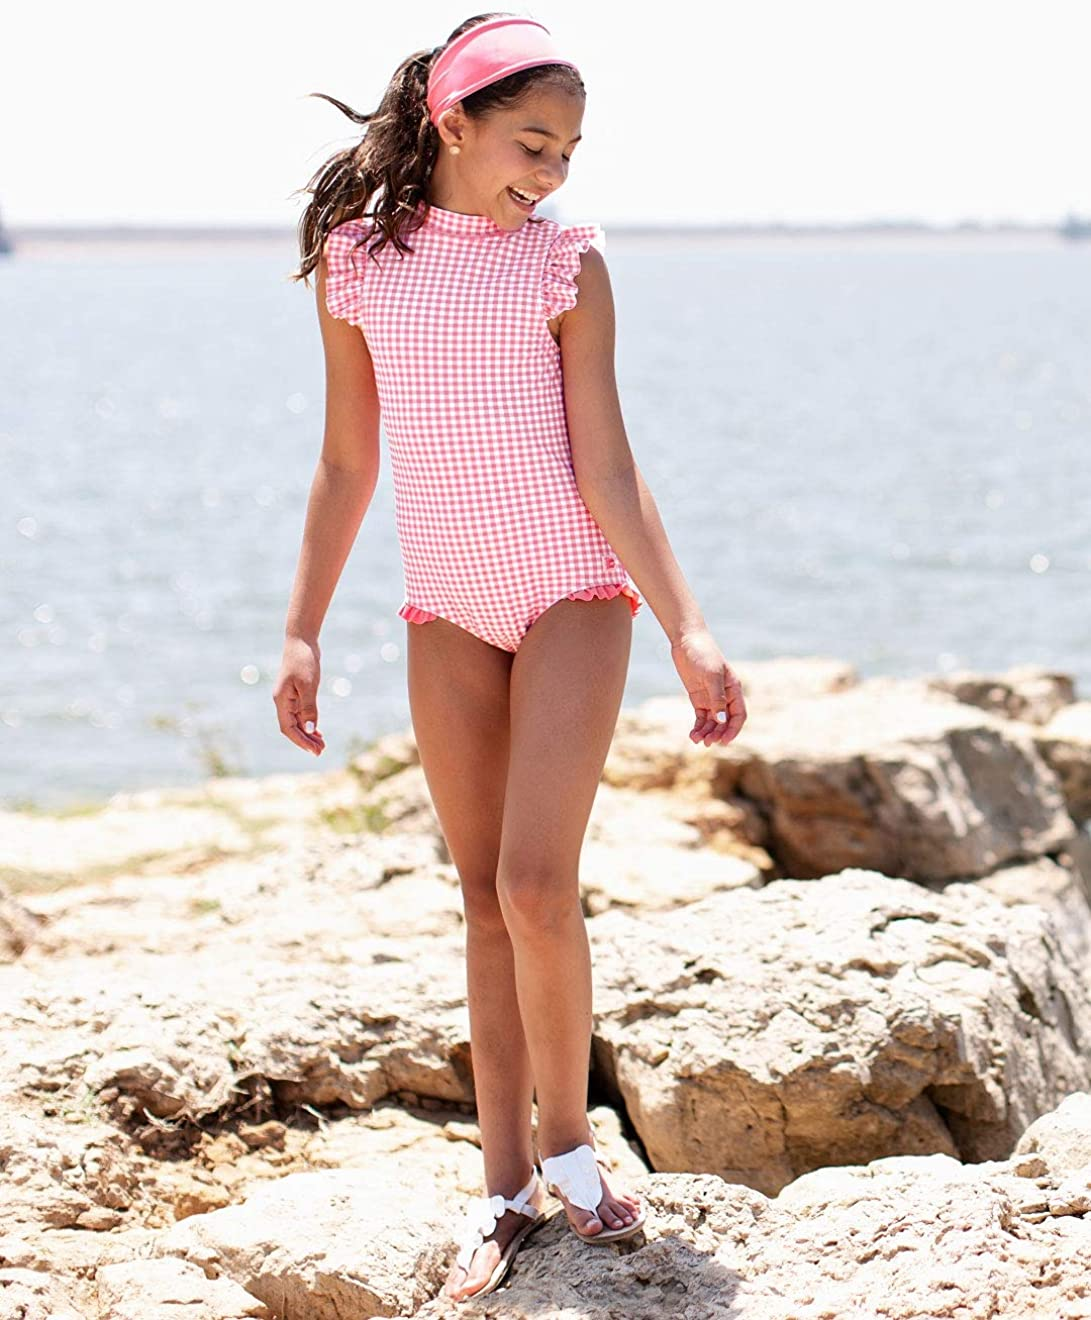 Sun Protective Ruffled Swimsuit Vintage Floral RuffleButts Little Girls High Neck One Piece UPF 50